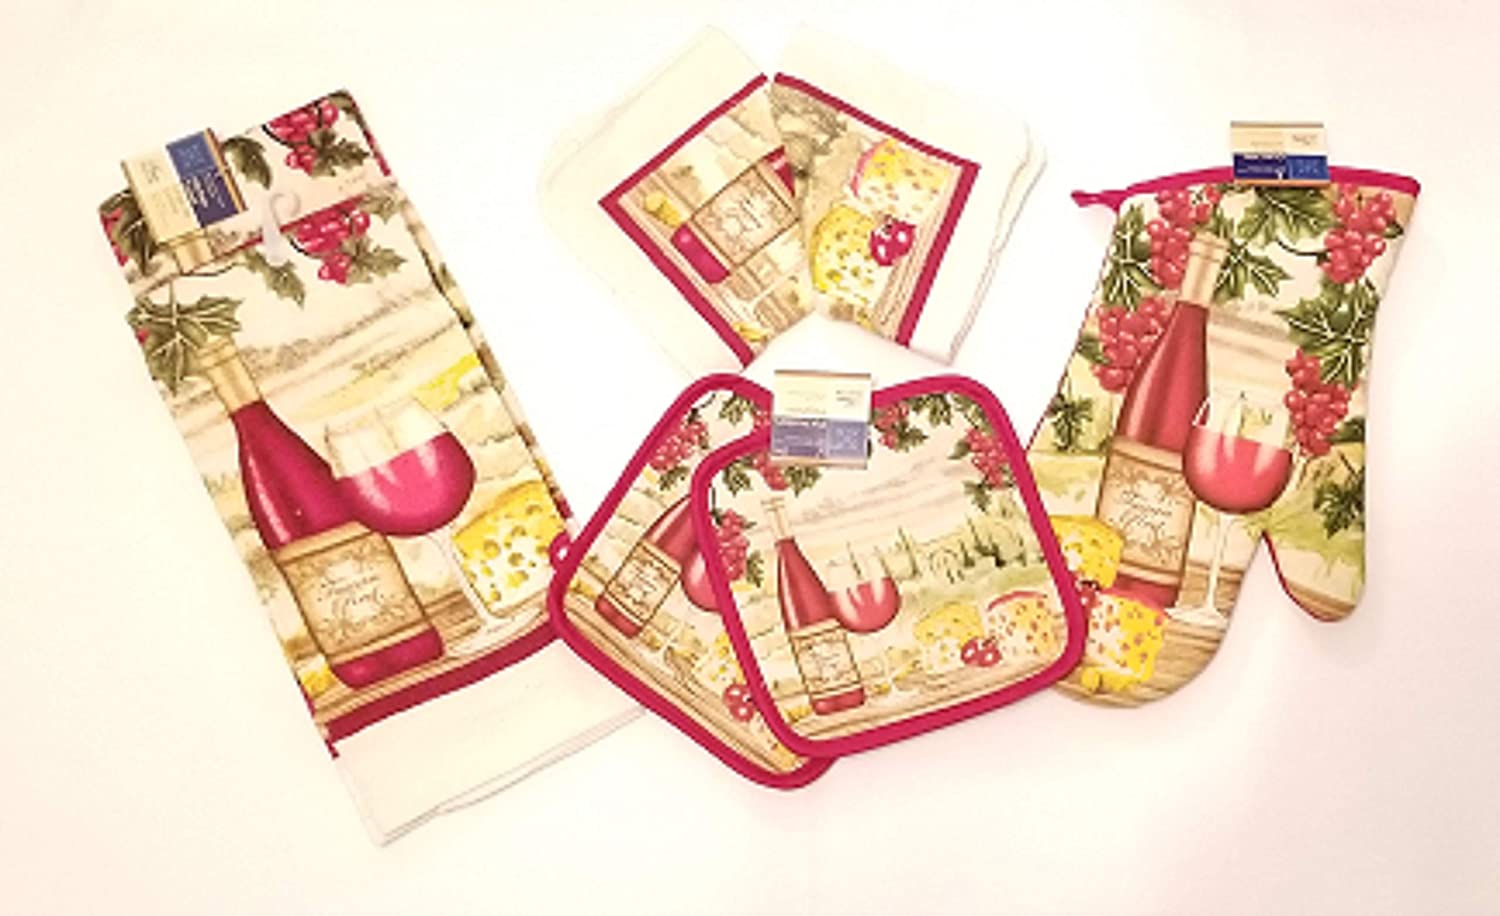 Home Collection Wine Cheese Berries Theme ~ 7-Pc Kitchen Linens Theme with 2 Towels - 2 Pot Holders - 2 Dish Cloths - 1 Oven Mitt